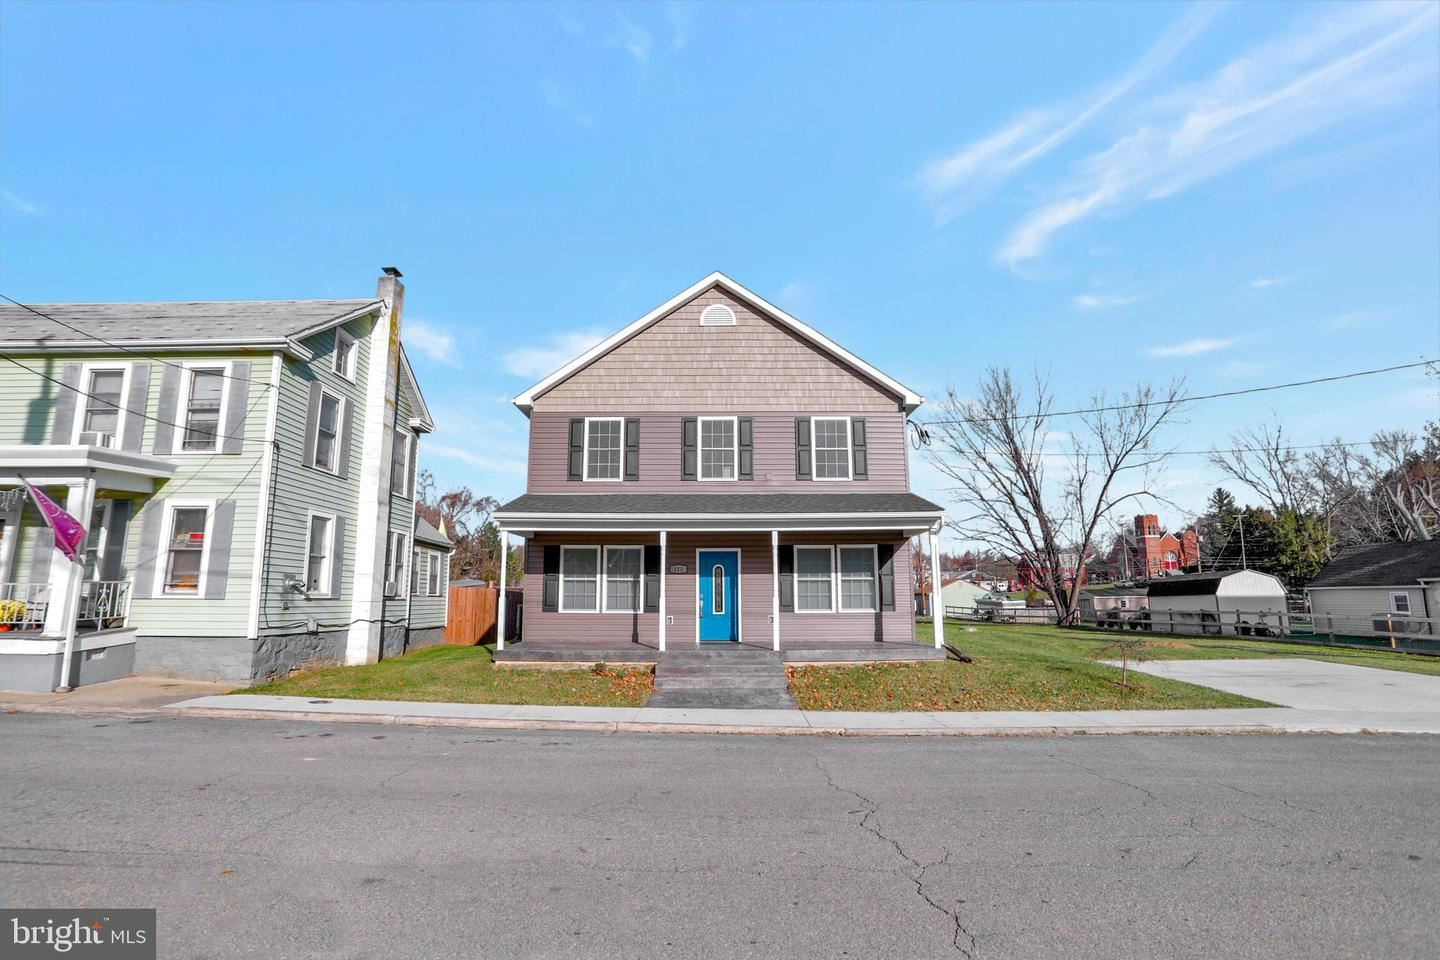 Photo of 115 E ANTIETAM ST, SHARPSBURG, MD 21782 (MLS # MDWA176420)